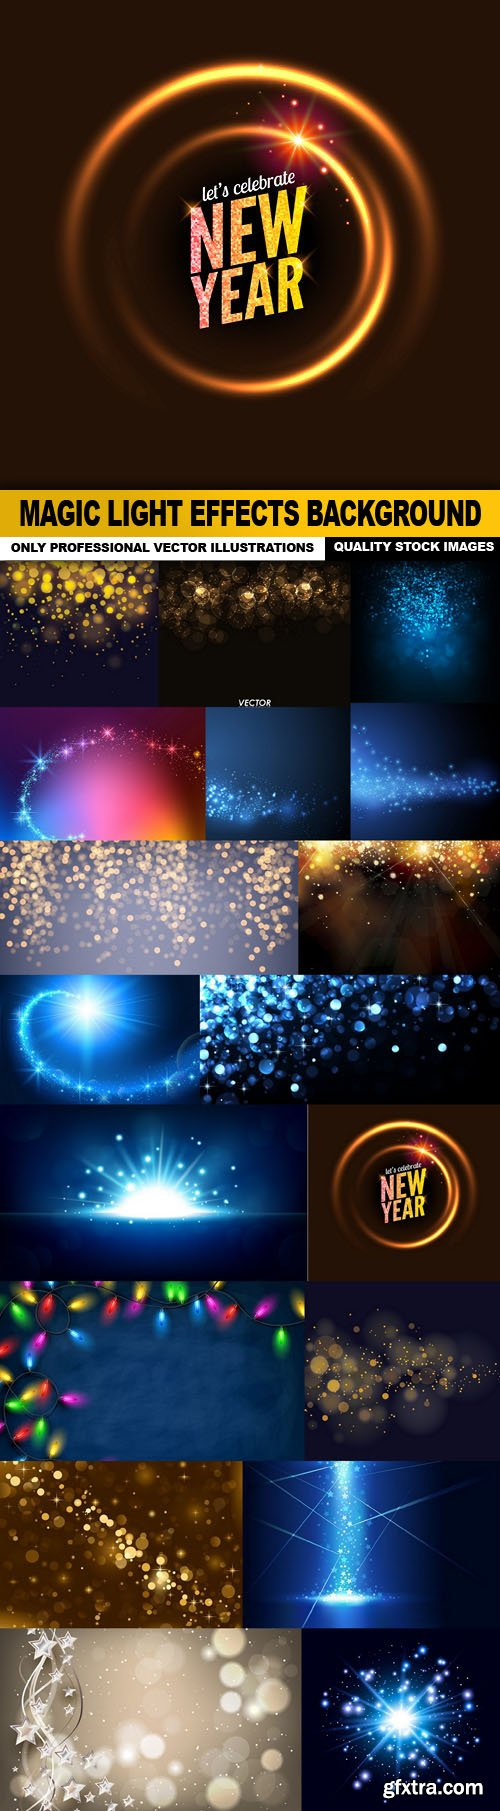 Magic Light Effects Background - 18 Vector